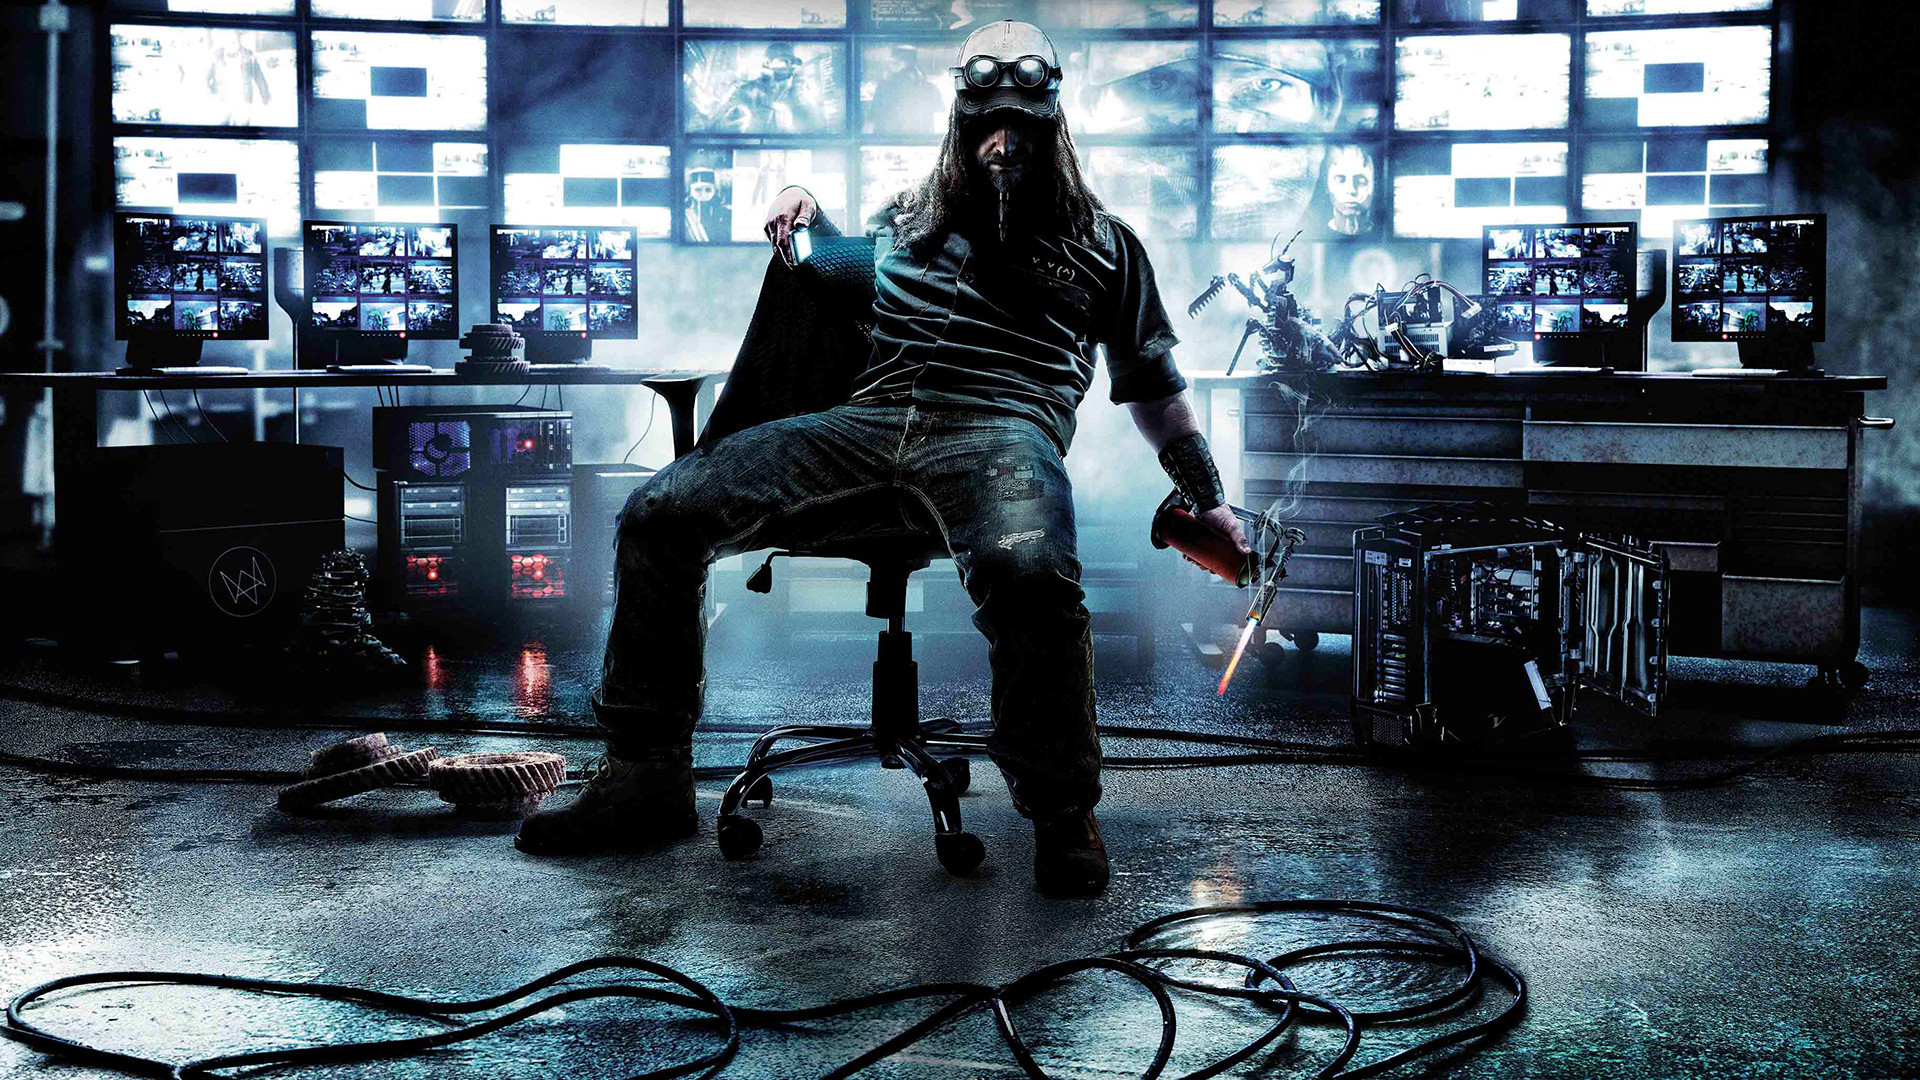 Watch Dogs Wallpapers   Watch Dogs Full HD Quality Wallpapers